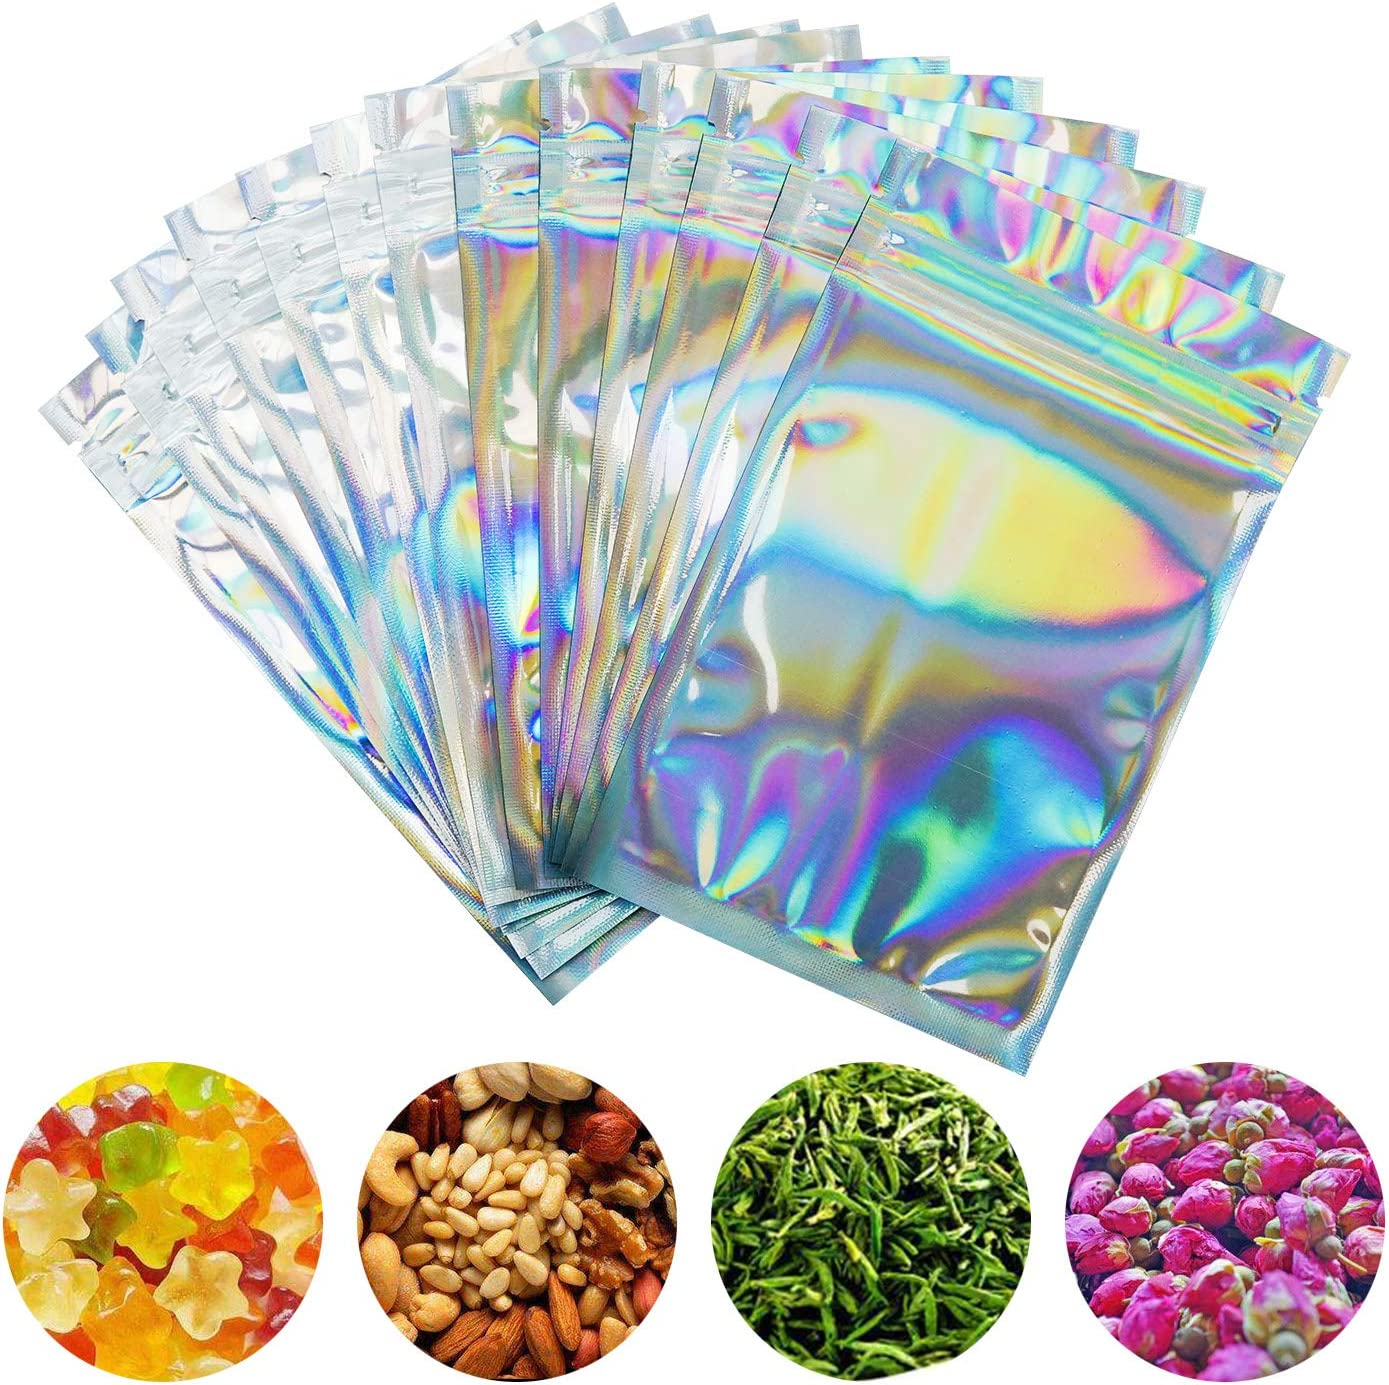 SMONCO 100 Pieces Smell Proof Bags - 3x5 Inches Resealable Mylar Bags Clear Zip Lock Food Candy Storage Bags Holographic Rainbow Color